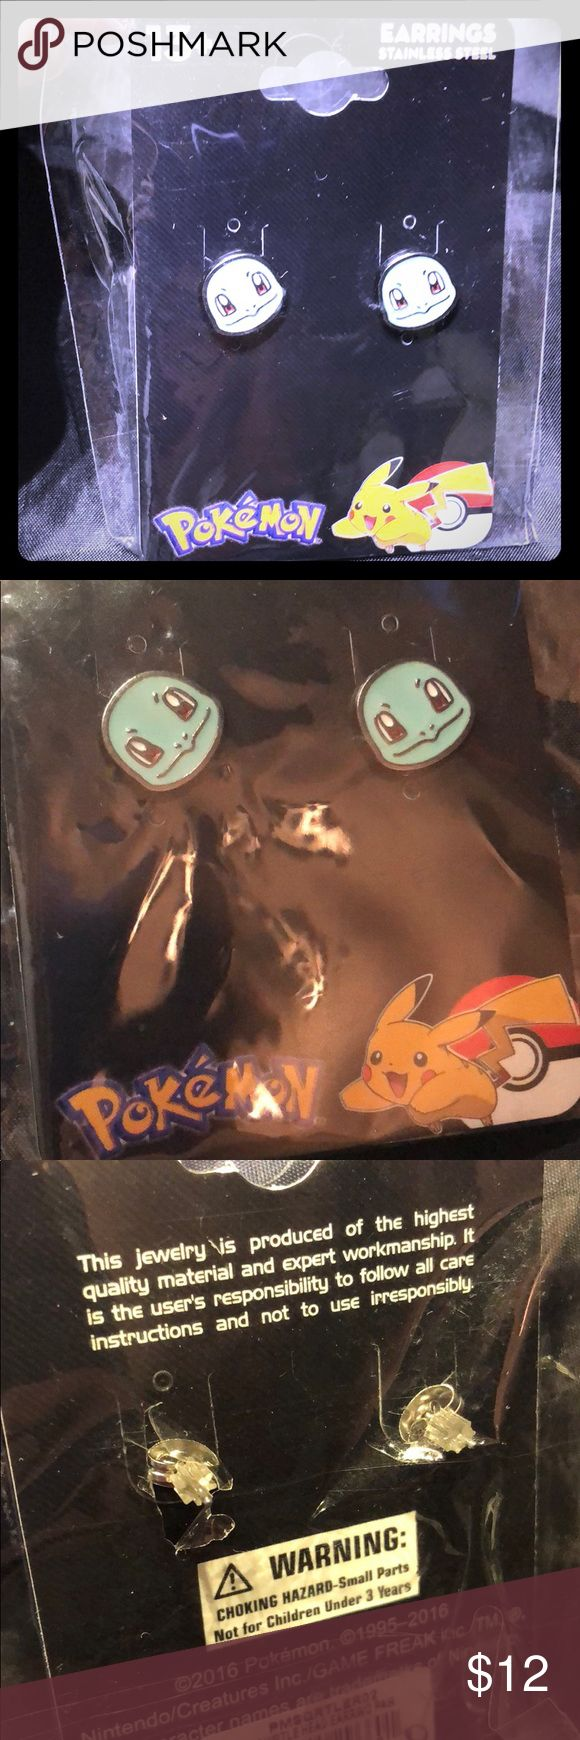 Pokémon Squirtle earrings 💥 Beautiful earrings with squirtles head! <3  Pokémon jewelry- stainless steel and licensed merchandise Pokemon Jewelry Earrings